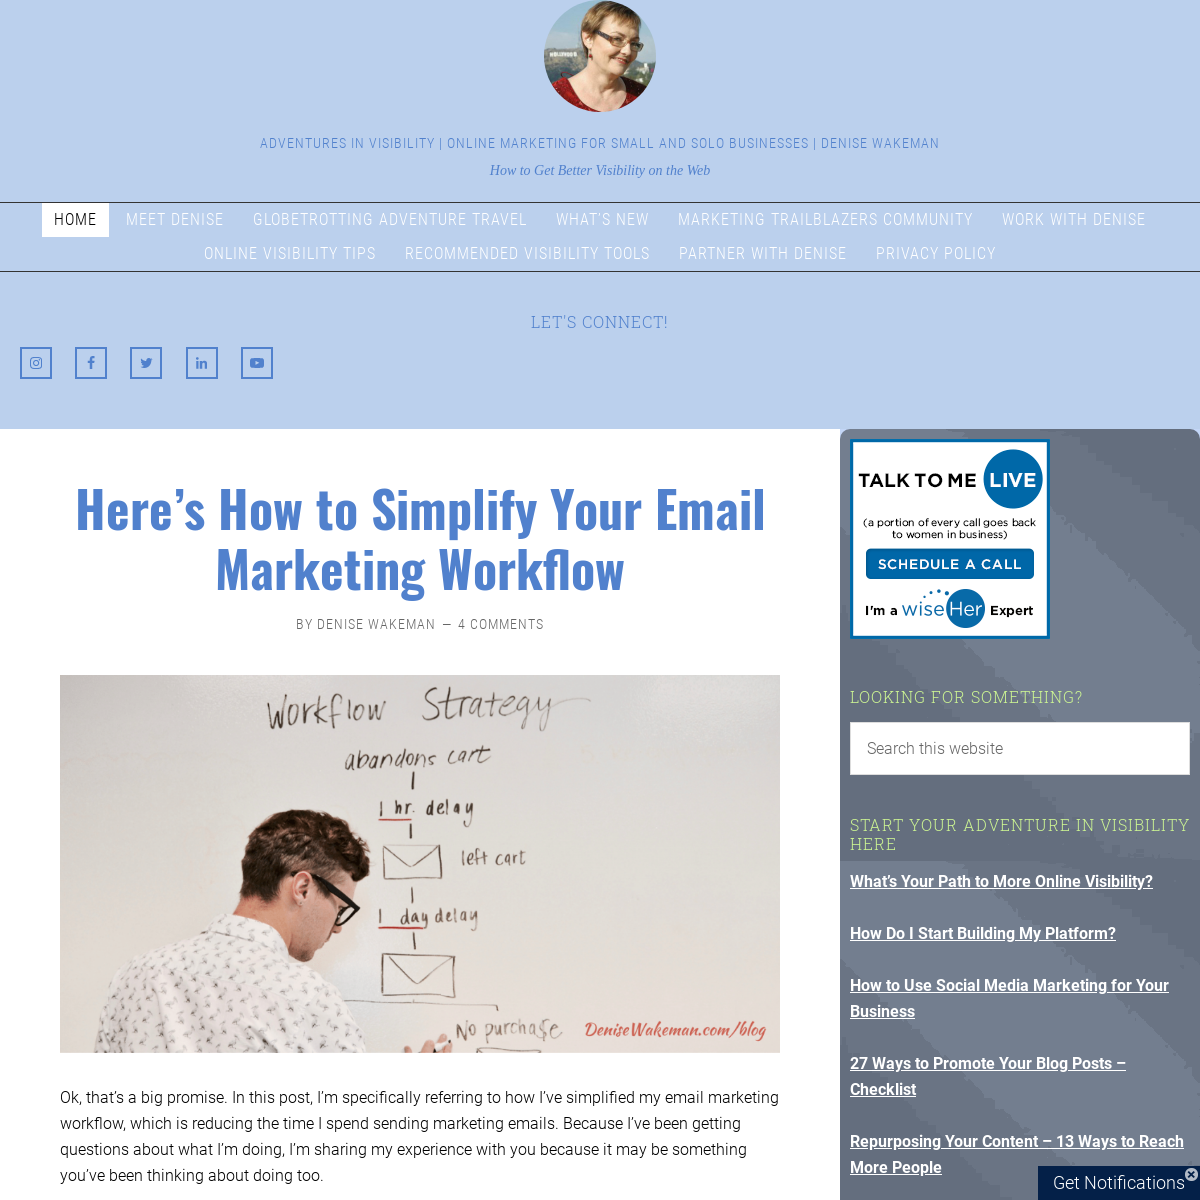 Adventures In Visibility - Online Marketing for Small and Solo Businesses - Denise Wakeman - How to Get Better Visibility on the